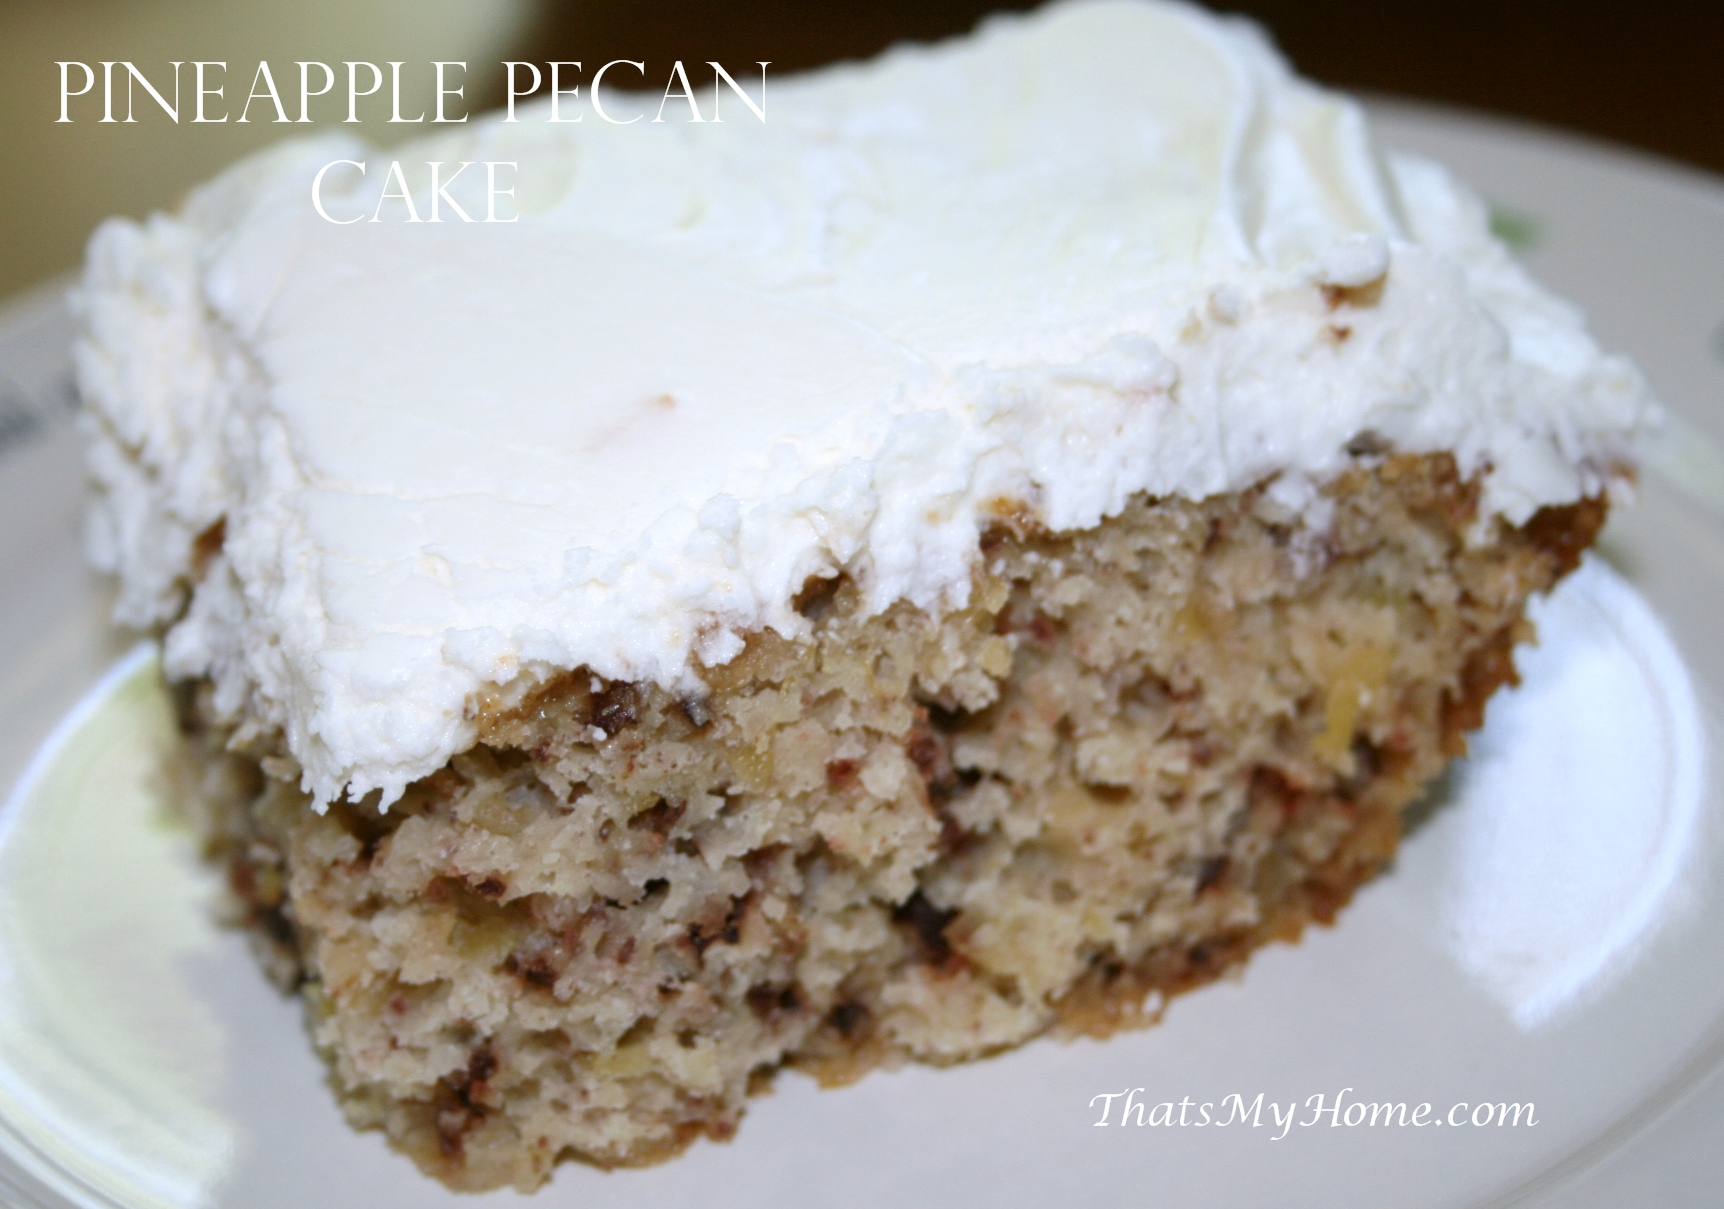 Pineapple Pecan Cake With Cream Cheese Frosting Recipes